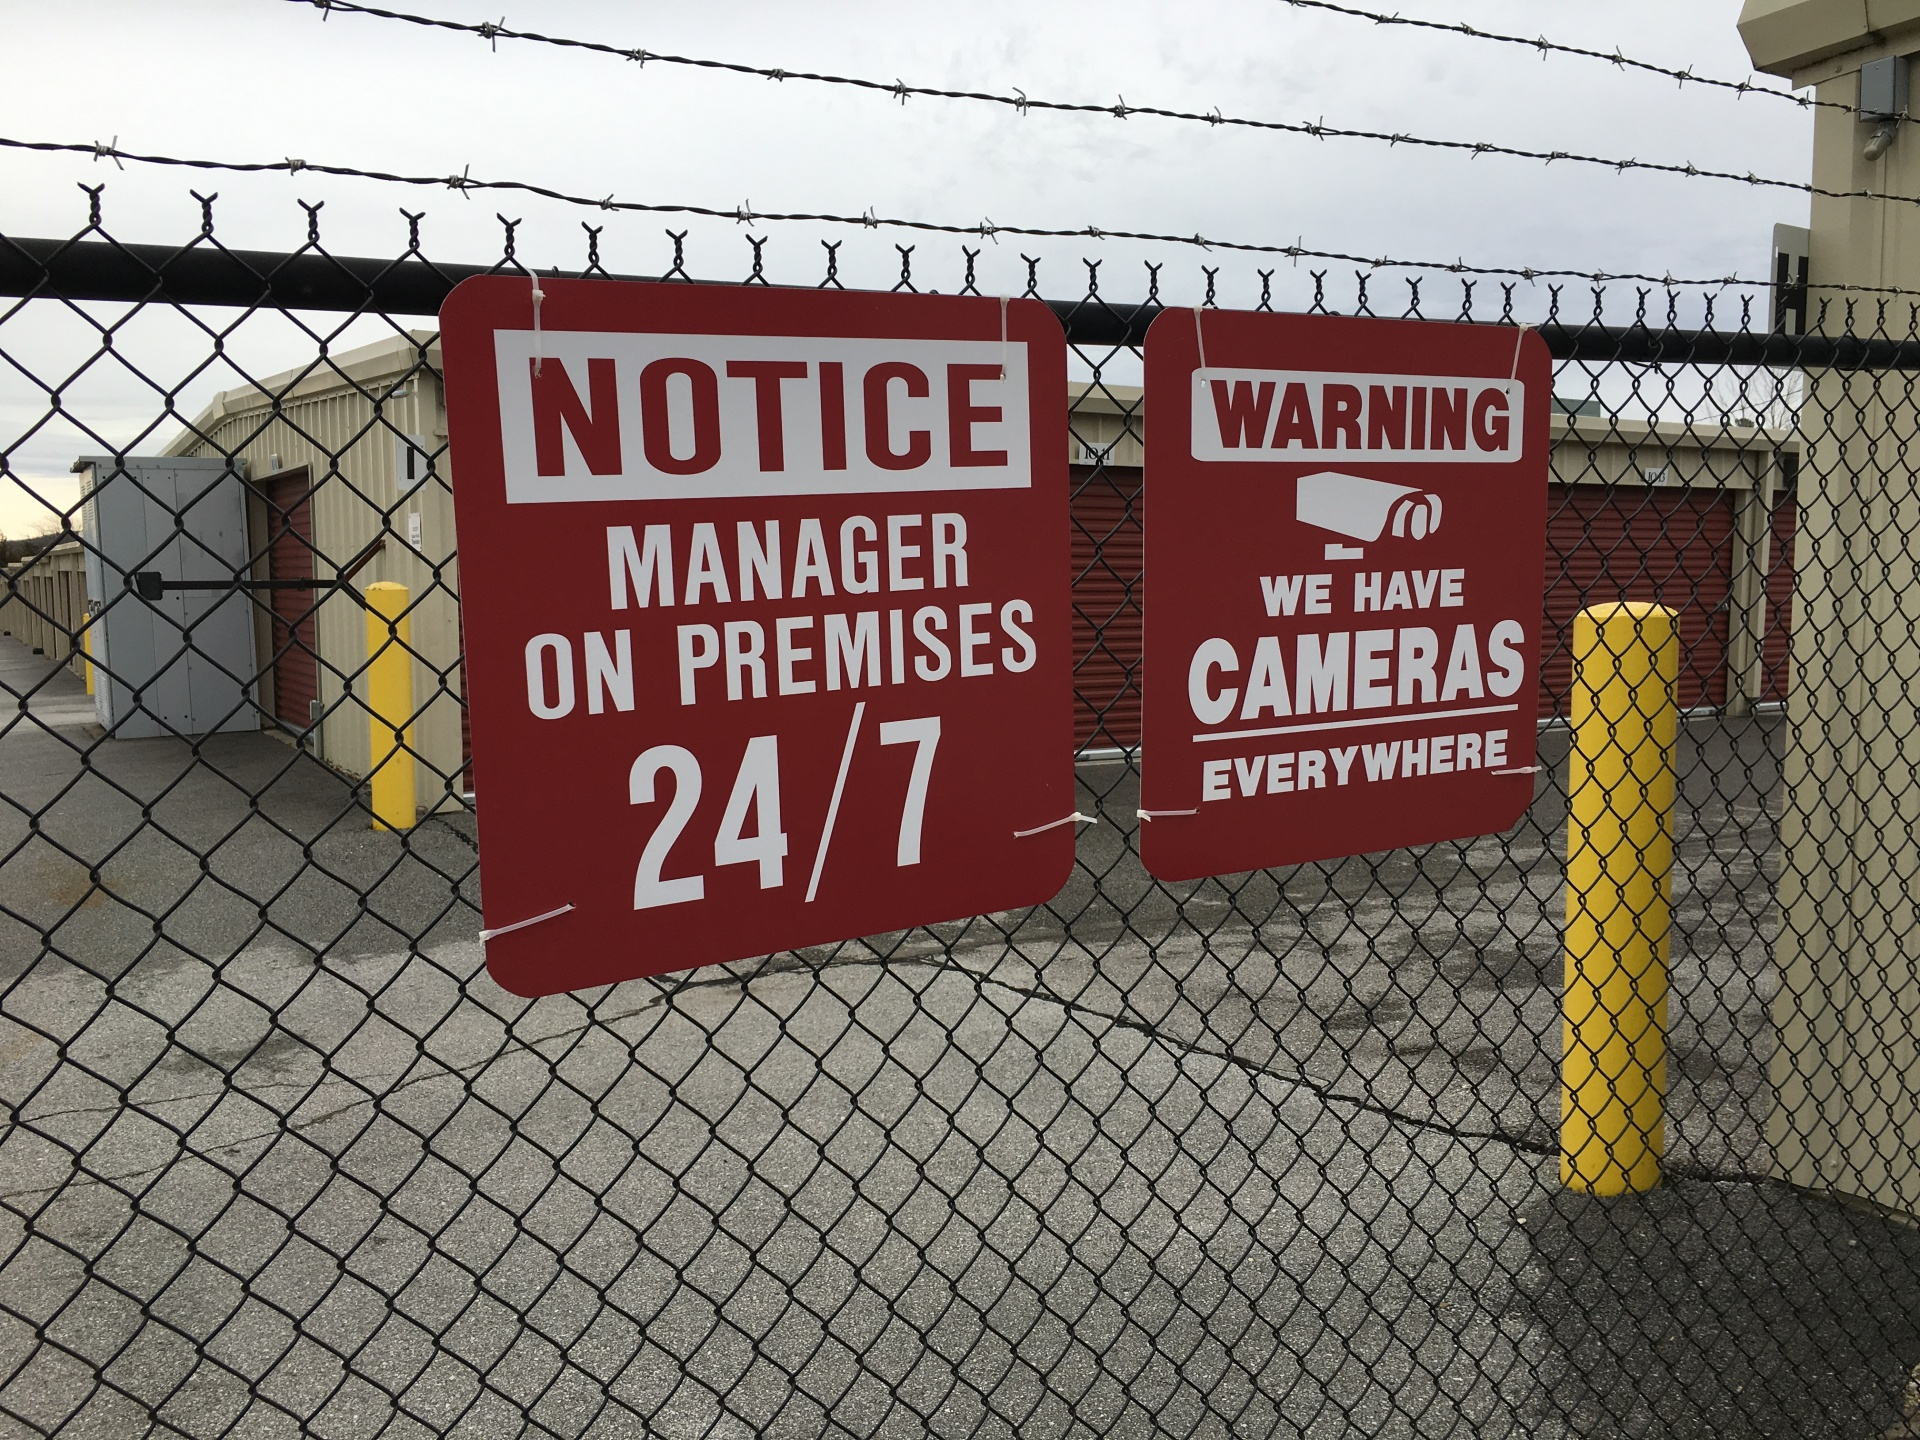 Manager on Property and Notice of Cameras signs